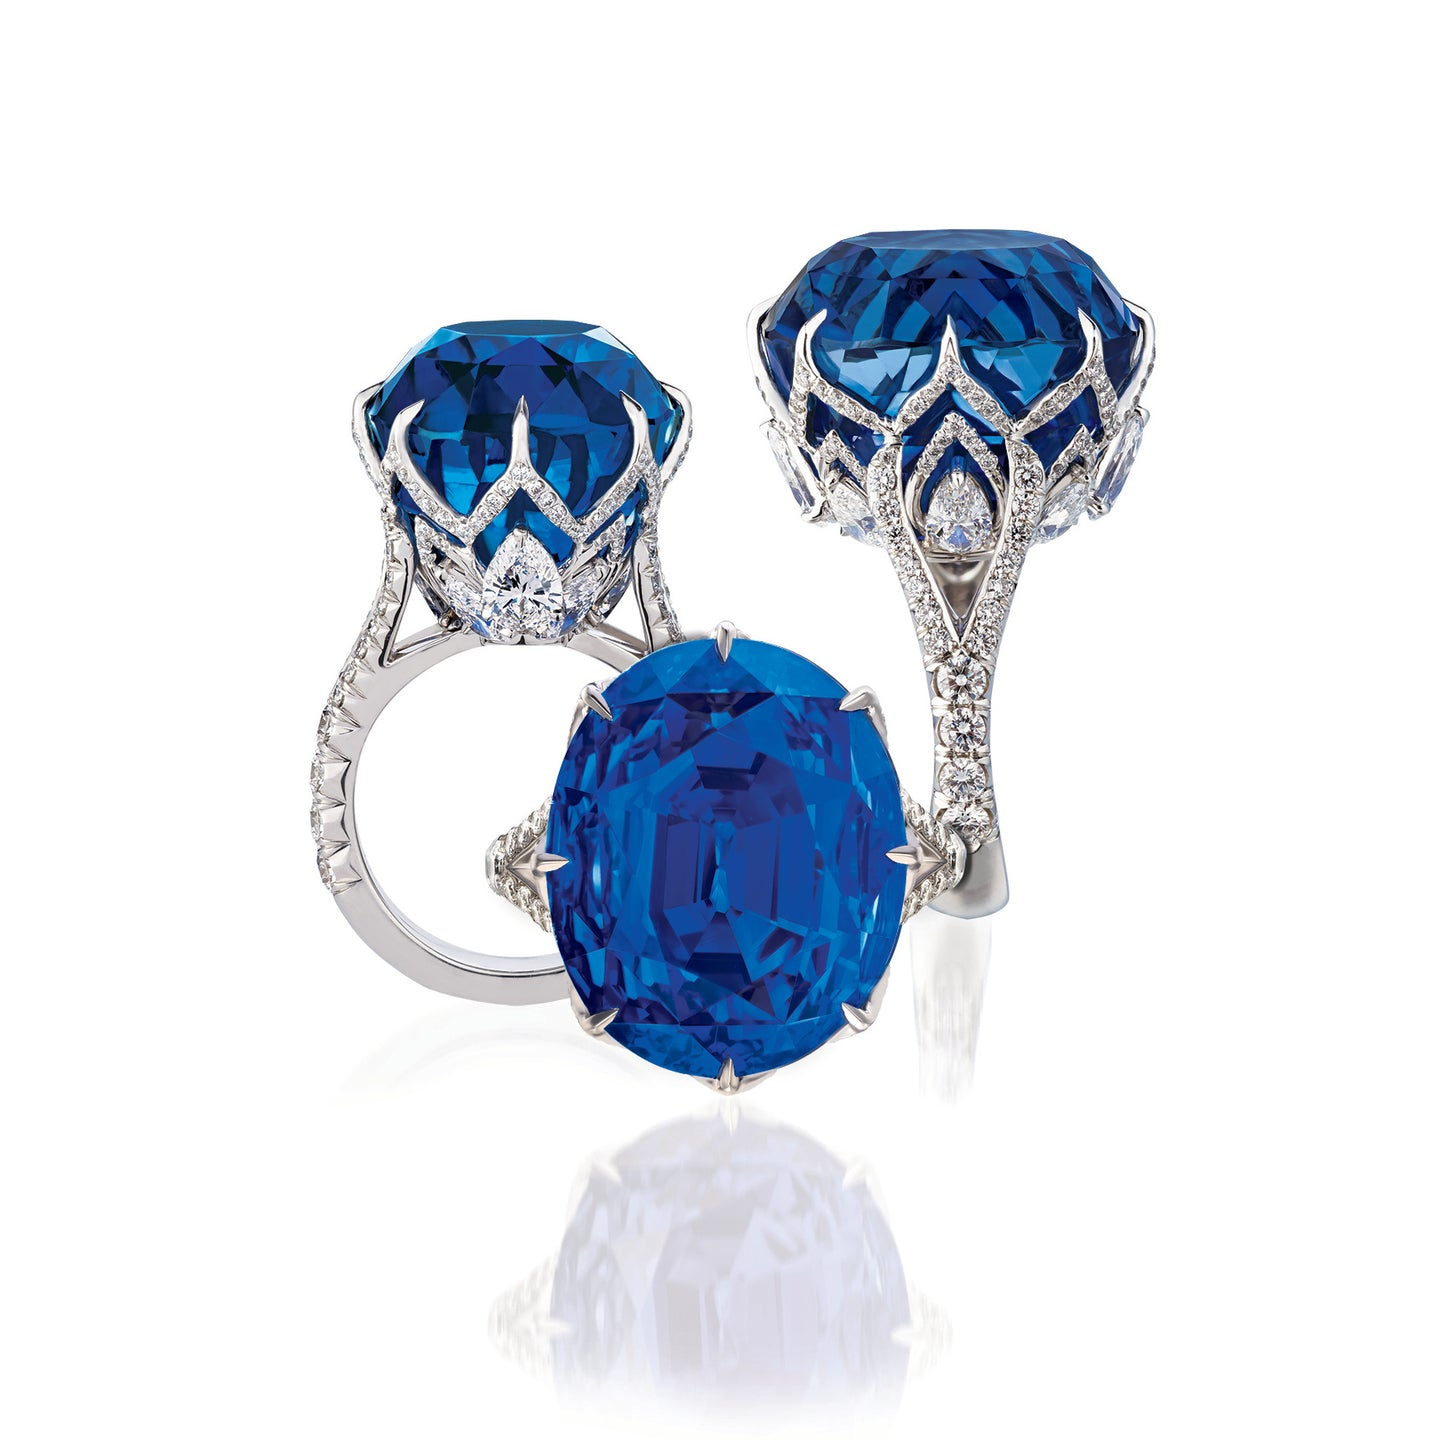 Sabel Collection Platinum Oval Ceylon Sapphire and White Diamond Ring